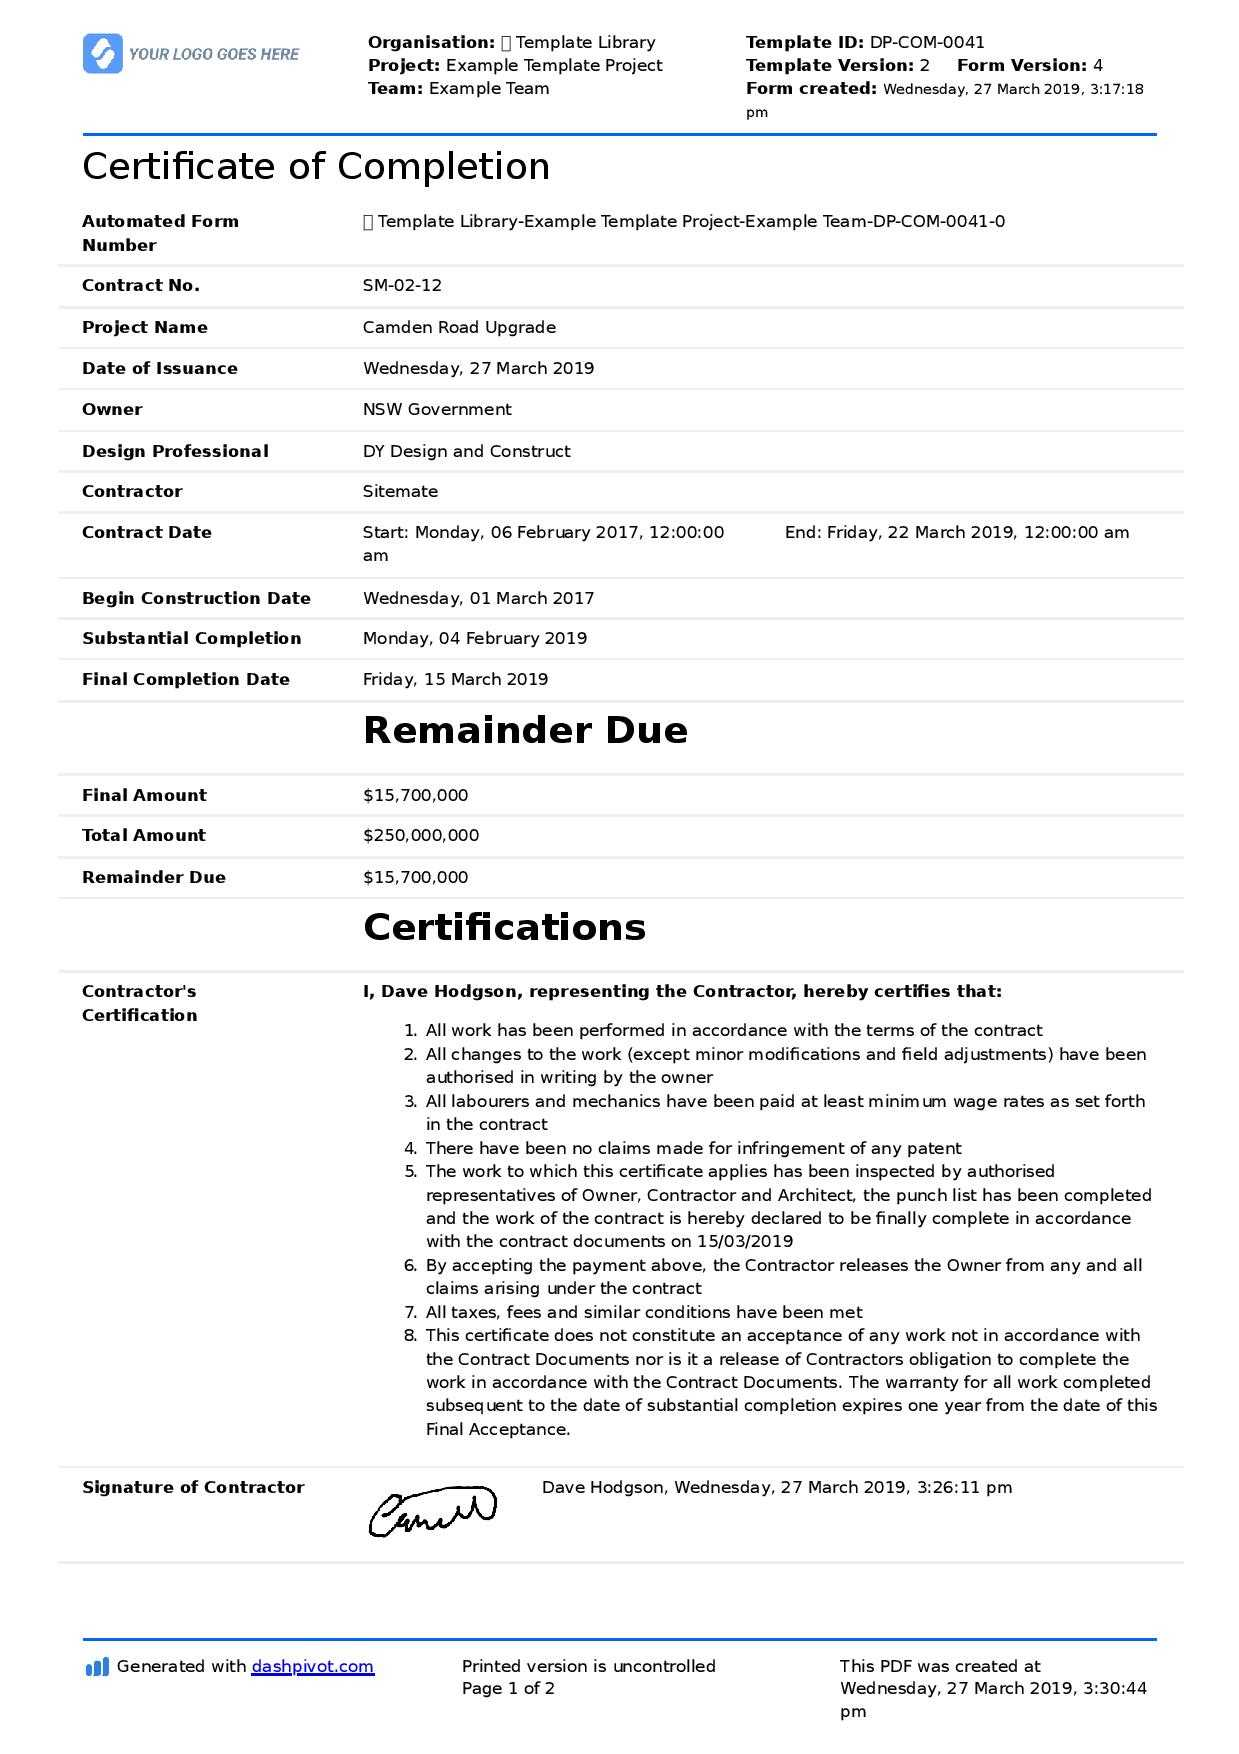 Certificate Of Completion For Construction (Free Template + Regarding Certificate Of Completion Template Construction